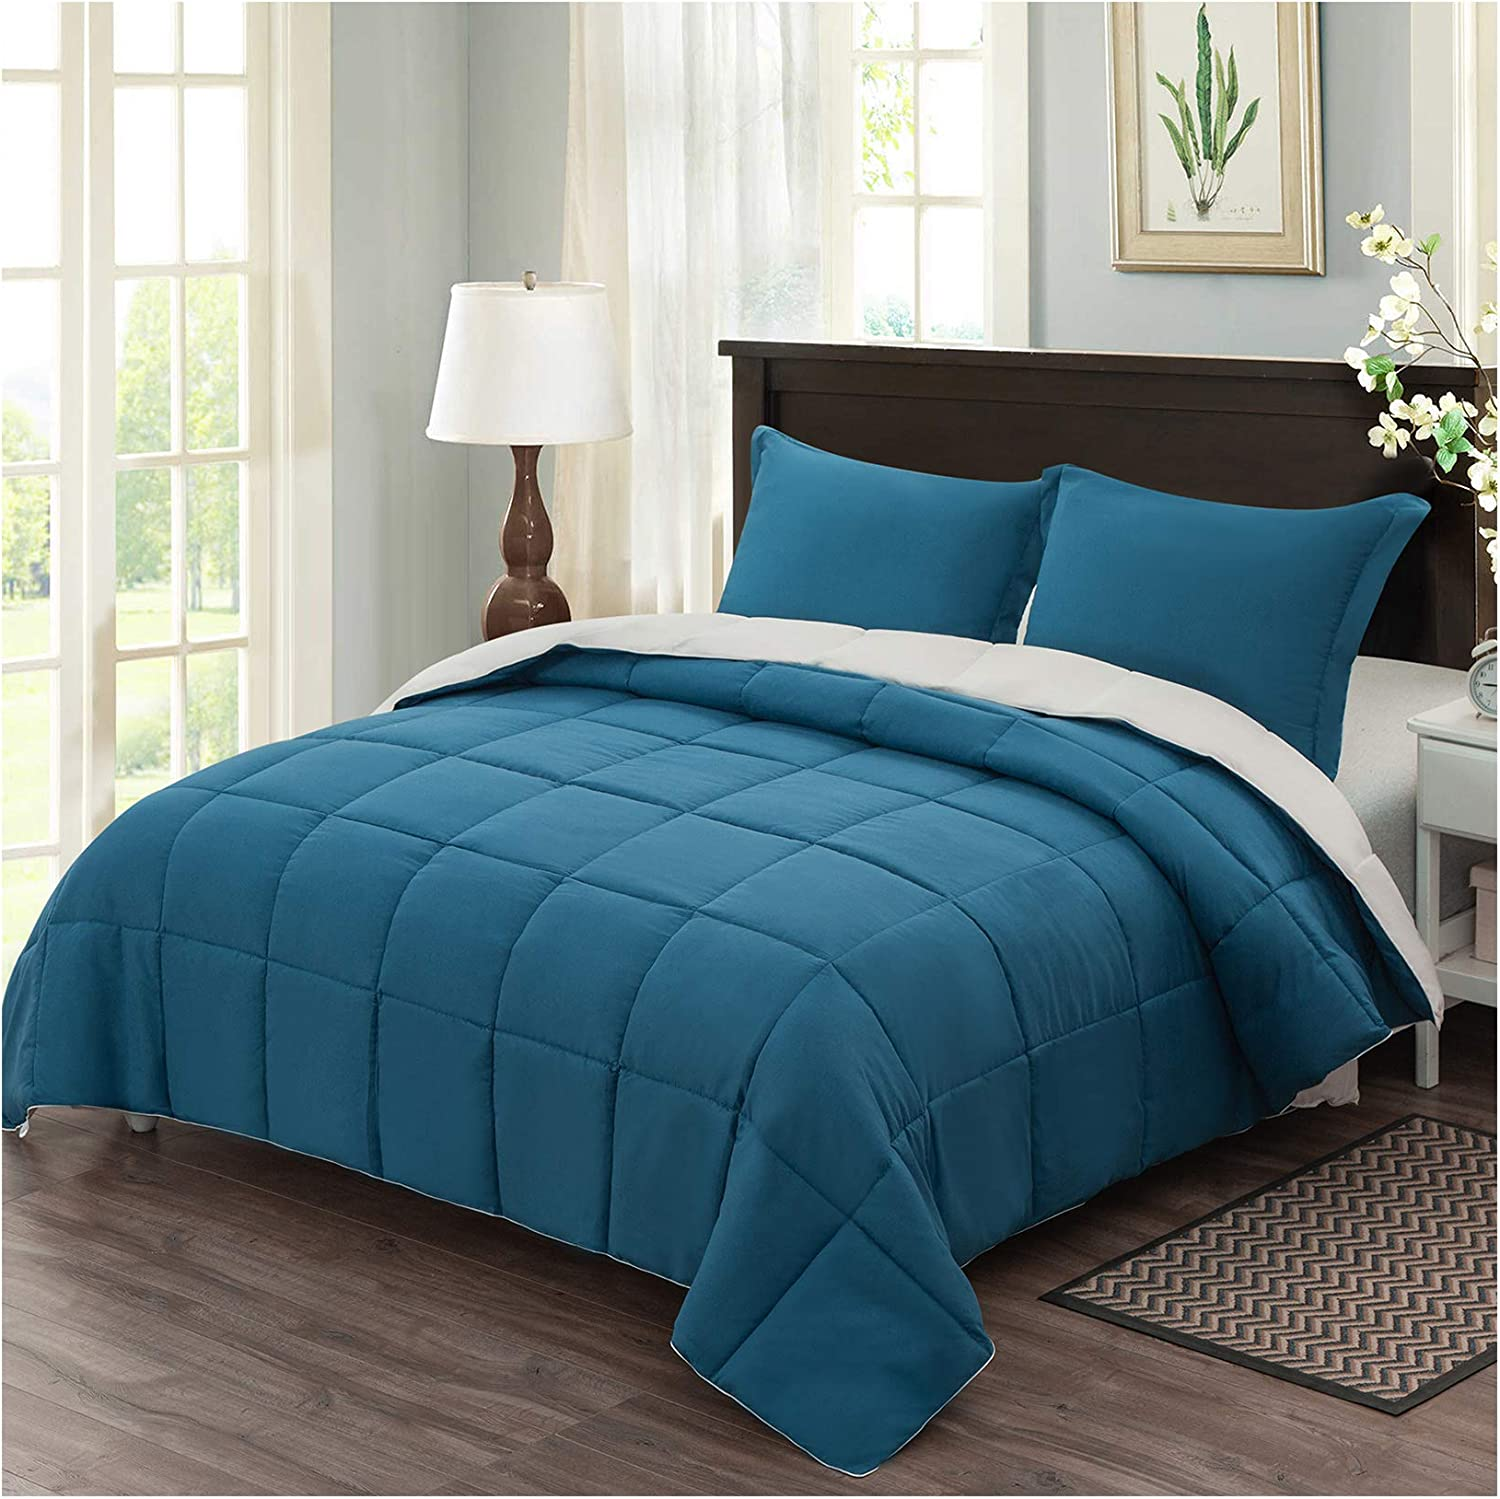 Homelike Moment Lightweight Comforter Set King Teal Reversible All Season Down Alternative Bed Comforter Set Summer Blanket 3 Piece - 1 Comforter 2 Pillow Shams King Size Teal / Ivory